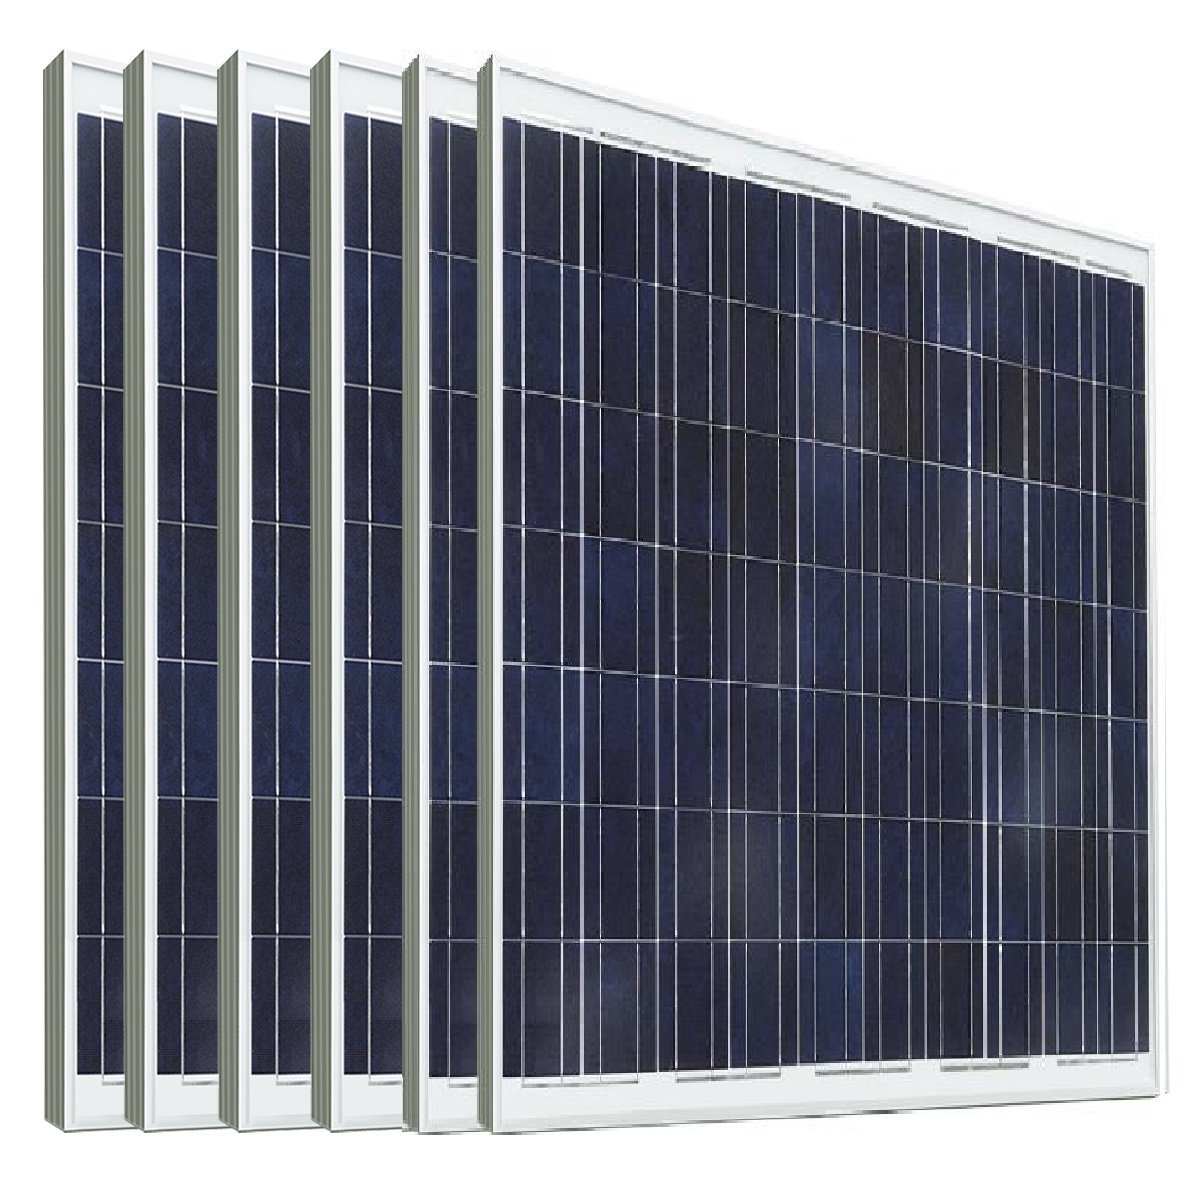 ECO-WORTHY 1KW Solar System PV: 6pcs 180 Watts 24 Volts PV Solar Panel Module 24V Battery Charging